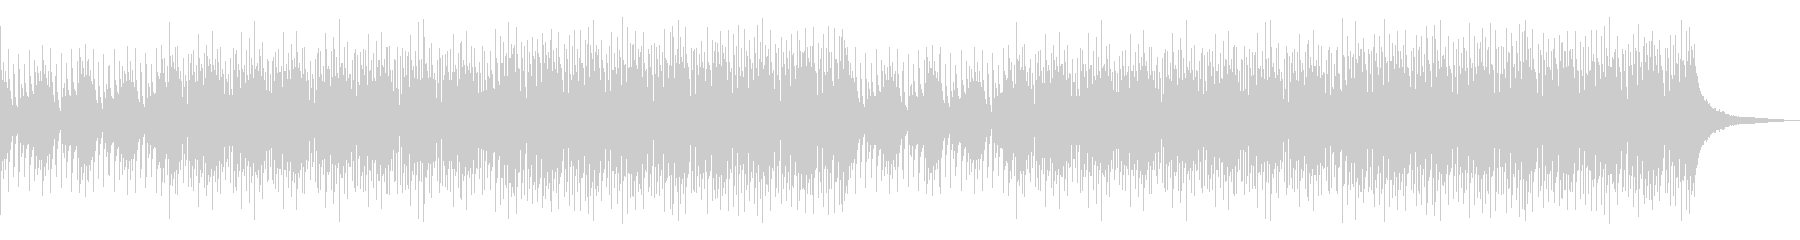 No synth ver Piano synth Painful's unreproduced waveform